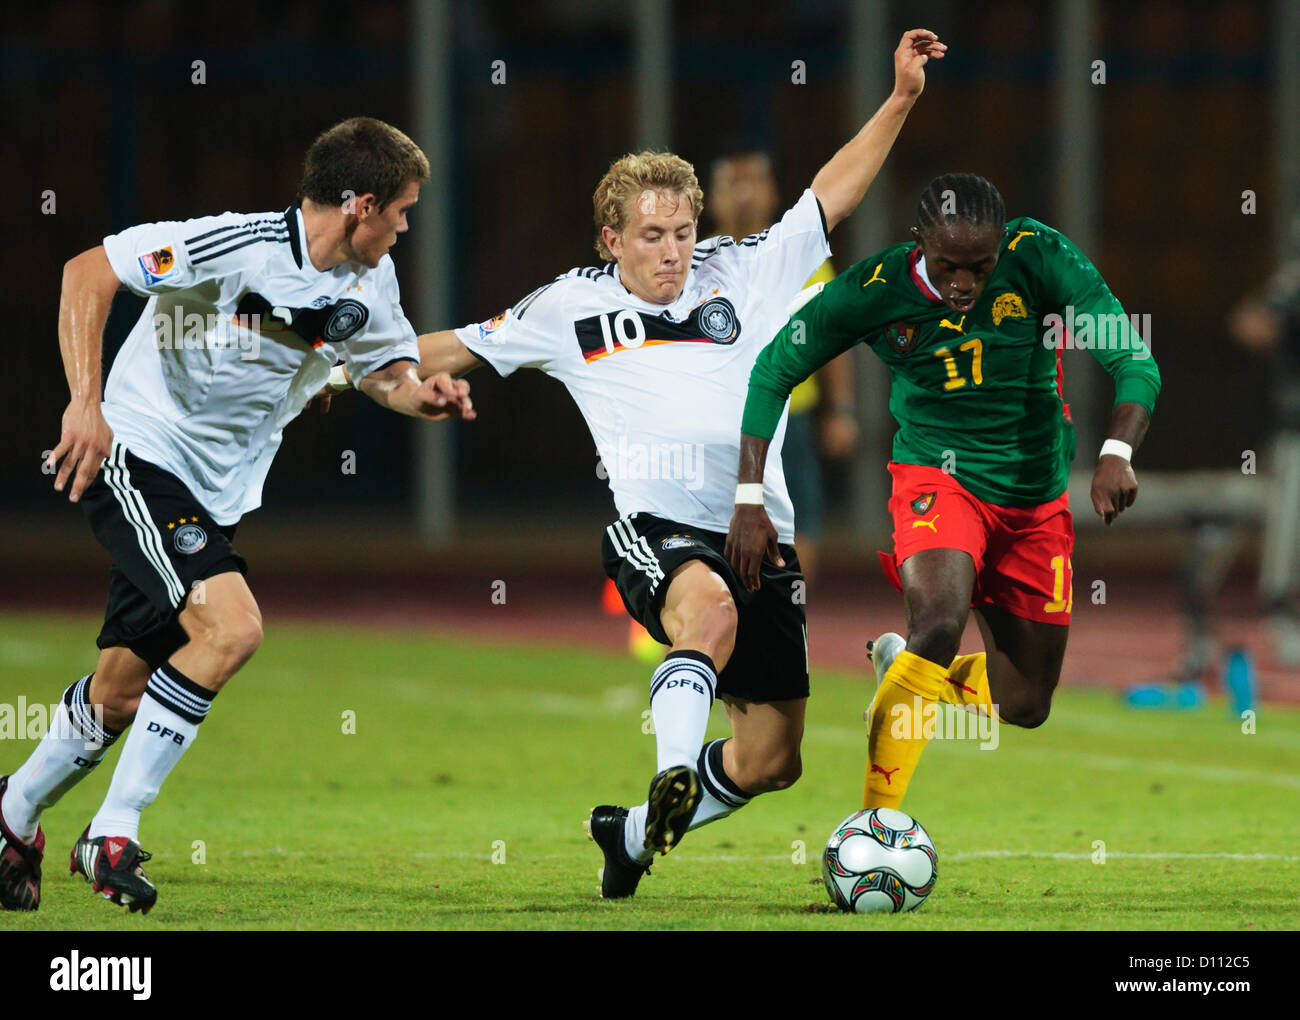 Lewis Holtby of Germany (10) defends against Germain Tiko of Cameroon (17) during the 2009 FIFA U-20 World Cup Group - Stock Image